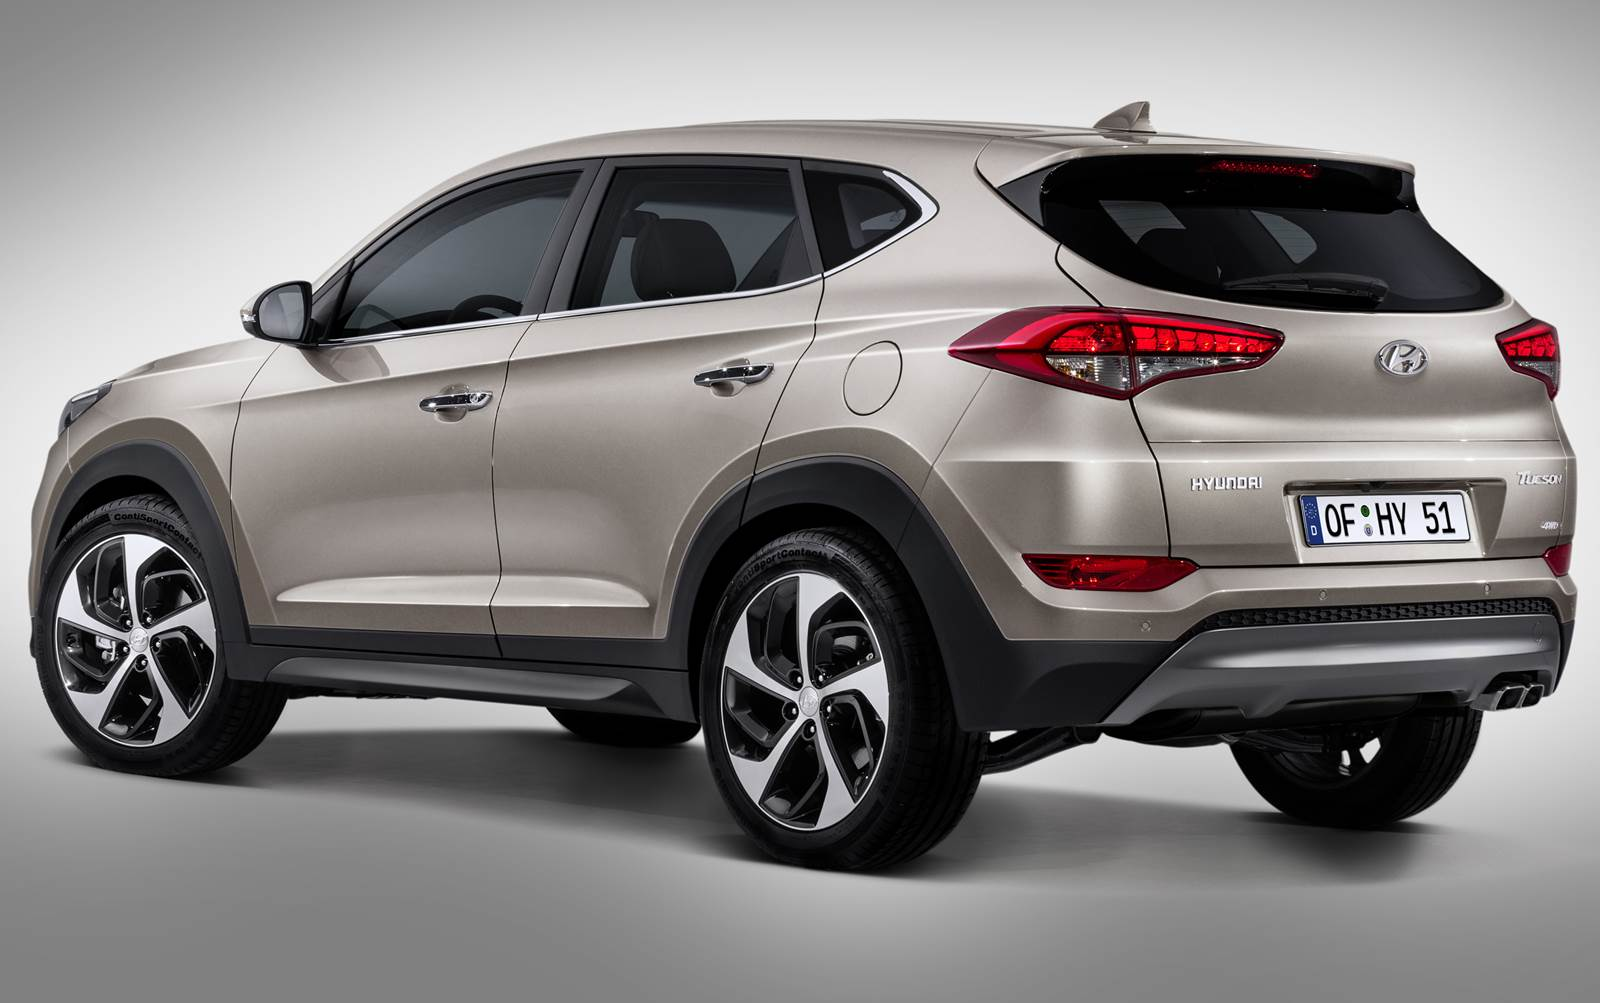 hyundai tucson ix35 2016 v deo fotos e especifica es car blog br. Black Bedroom Furniture Sets. Home Design Ideas